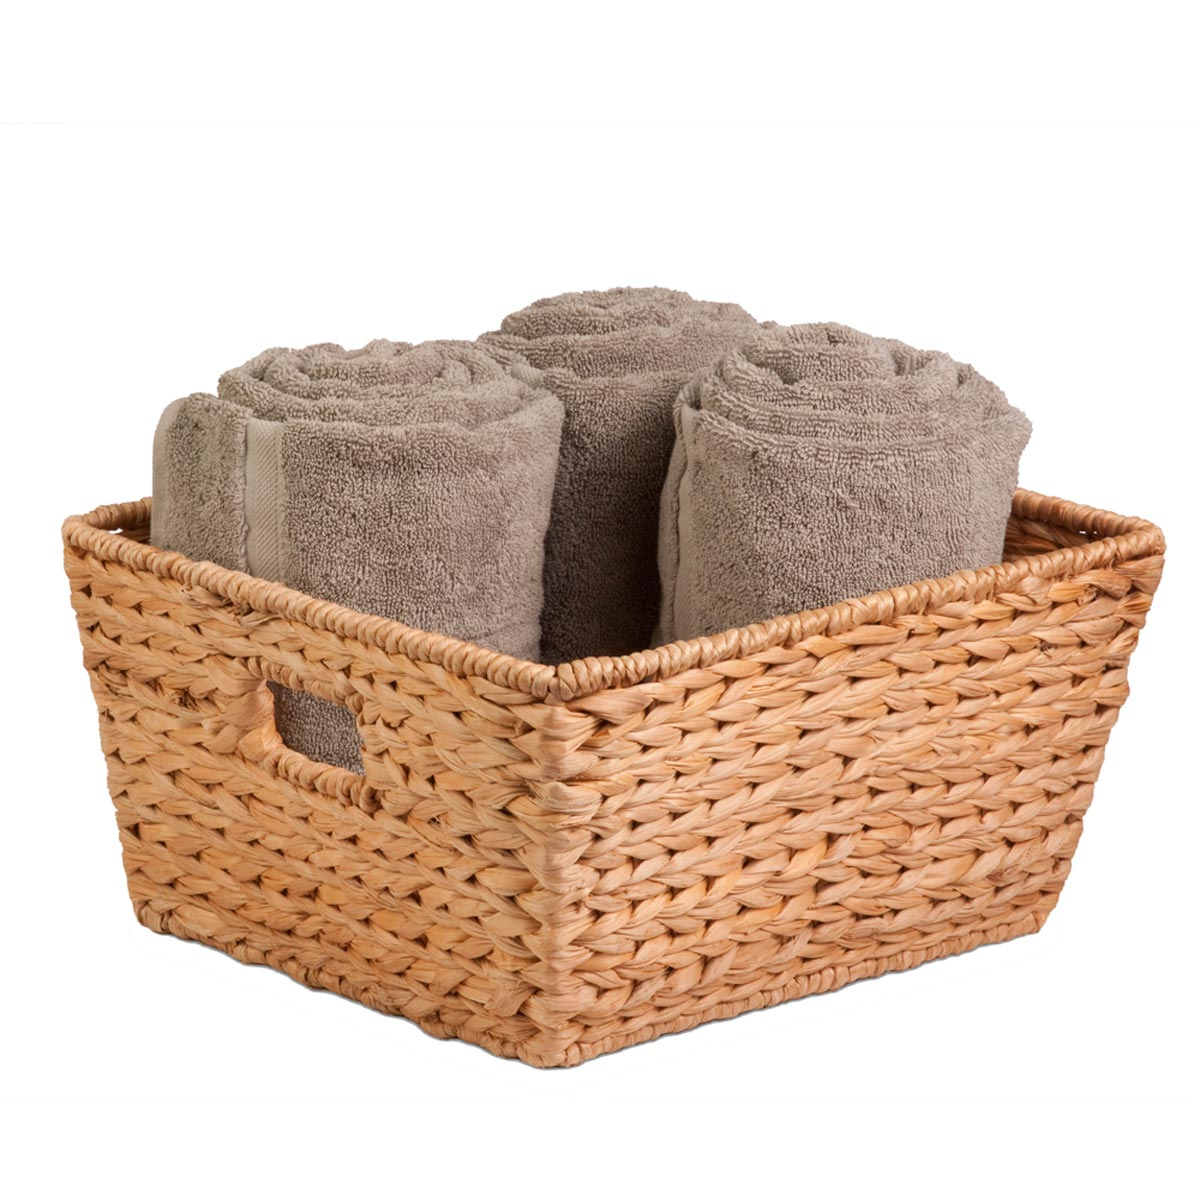 15 in. x 15 in. x 8 in. Square Natural Hyacinth Storage Basket, Large